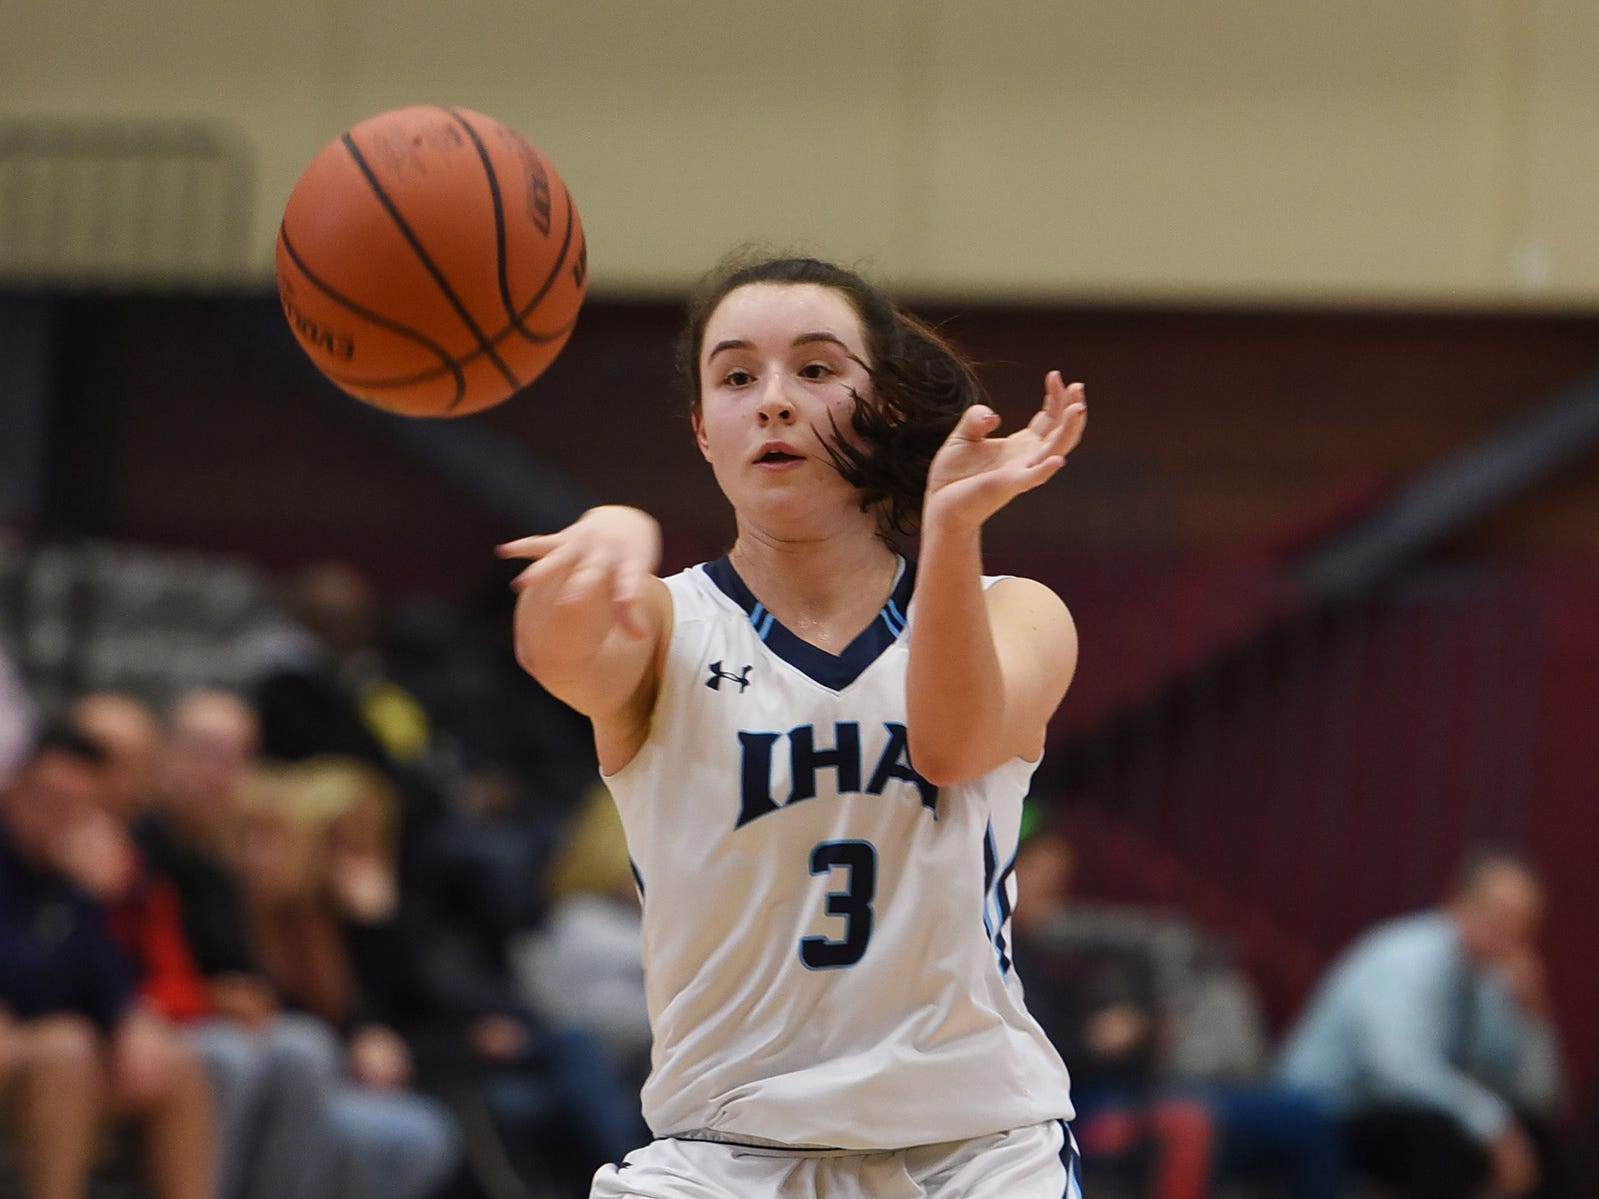 Brittany Graff (no. 3) of Immaculate Heart makes a pass against NV/Old Tappan in the second half during the 2019 Bergen County girls basketball championship semifinal at Ramapo College in Mahwah on 02/10/19.